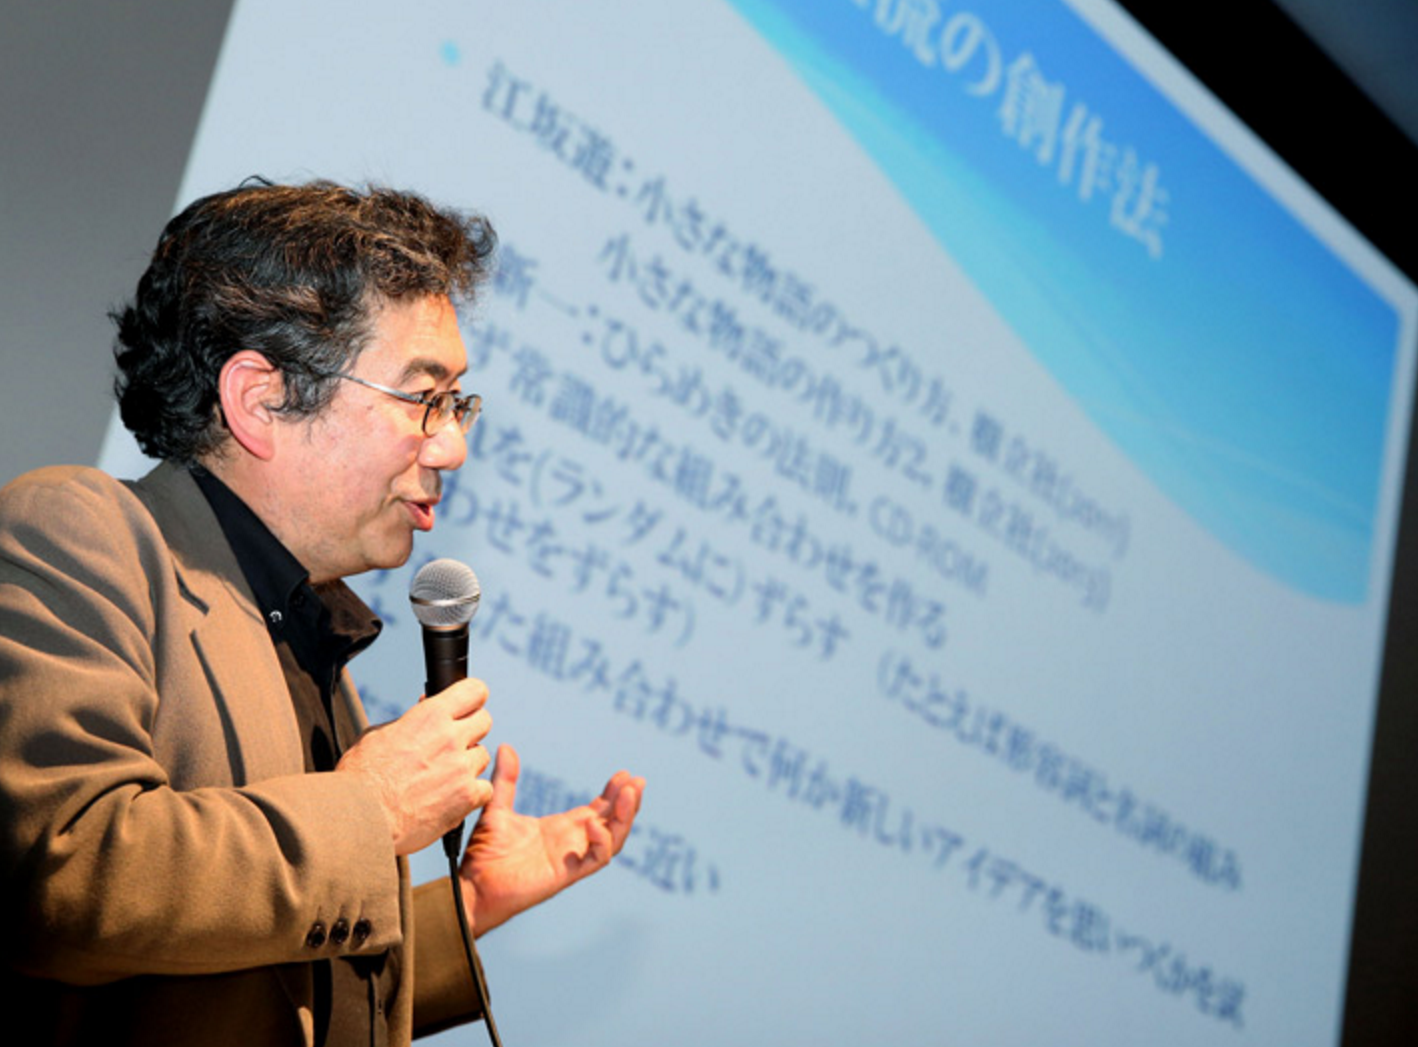 Hitoshi Matsubara, a professor of artificial intelligence at Future University Hakodate, talks about his team's AI project in Tokyo's Minato Ward on March 21. (Naoko Kawamura)